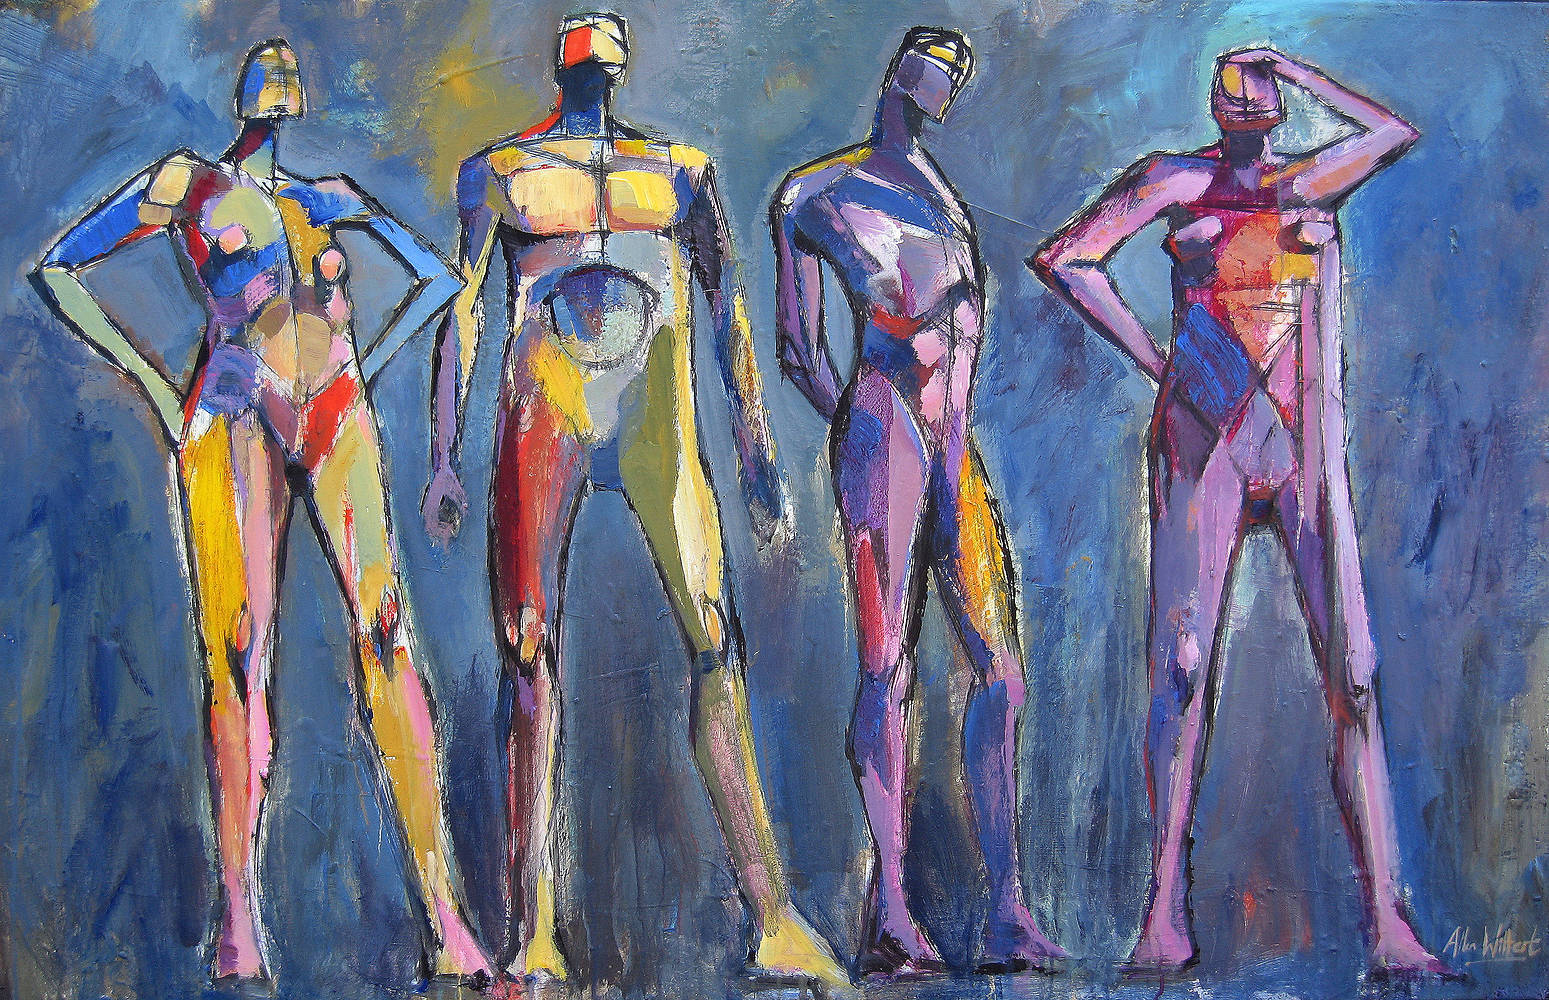 Acrylic painting The Four Standing Figures by Allen  Wittert